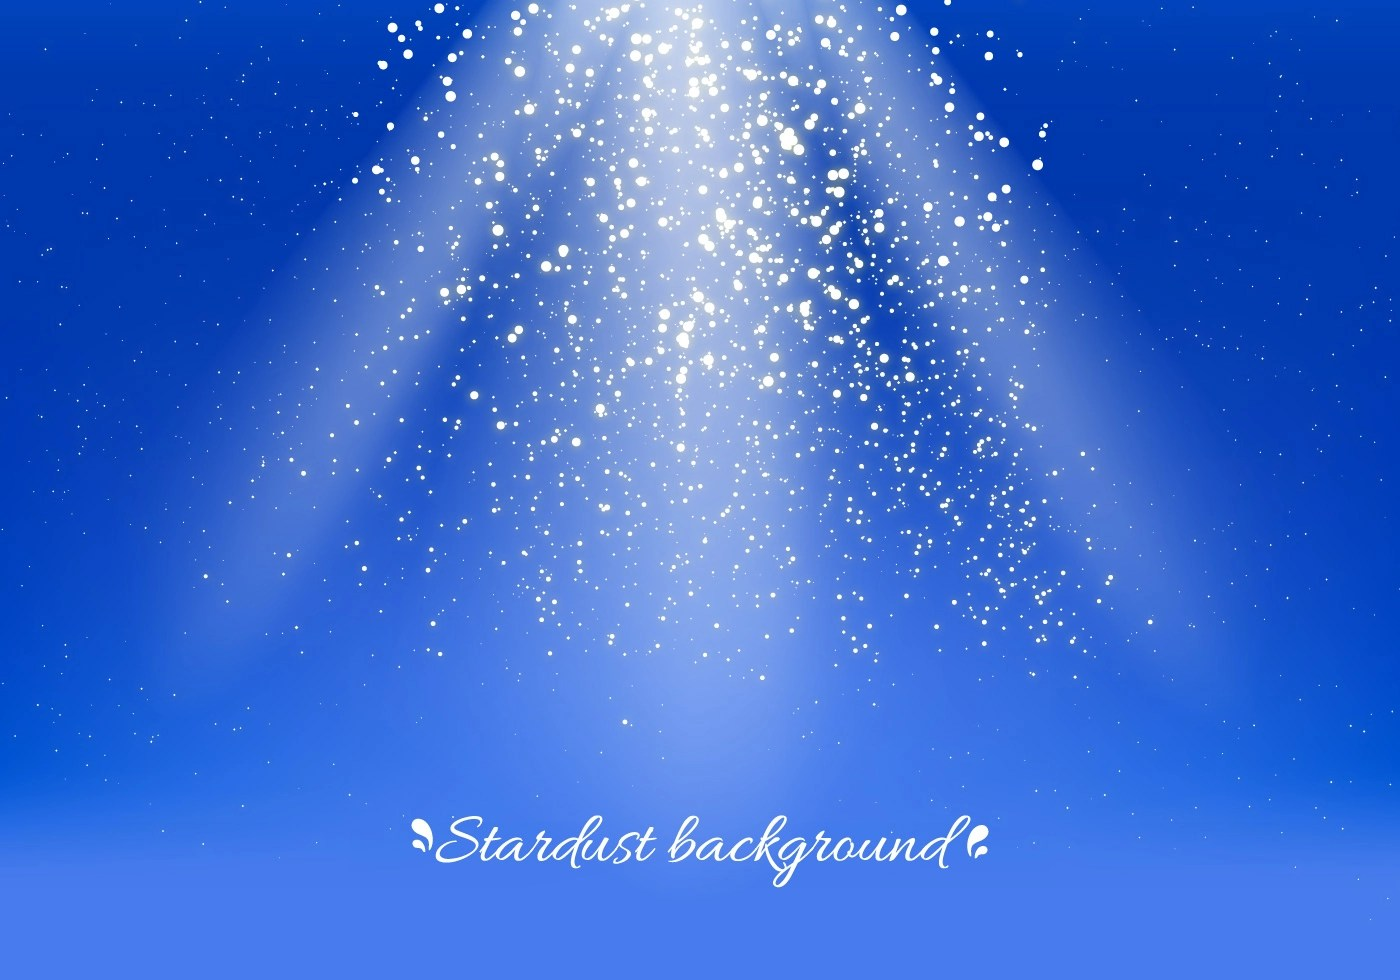 Blue And Silver Holiday Backgrounds